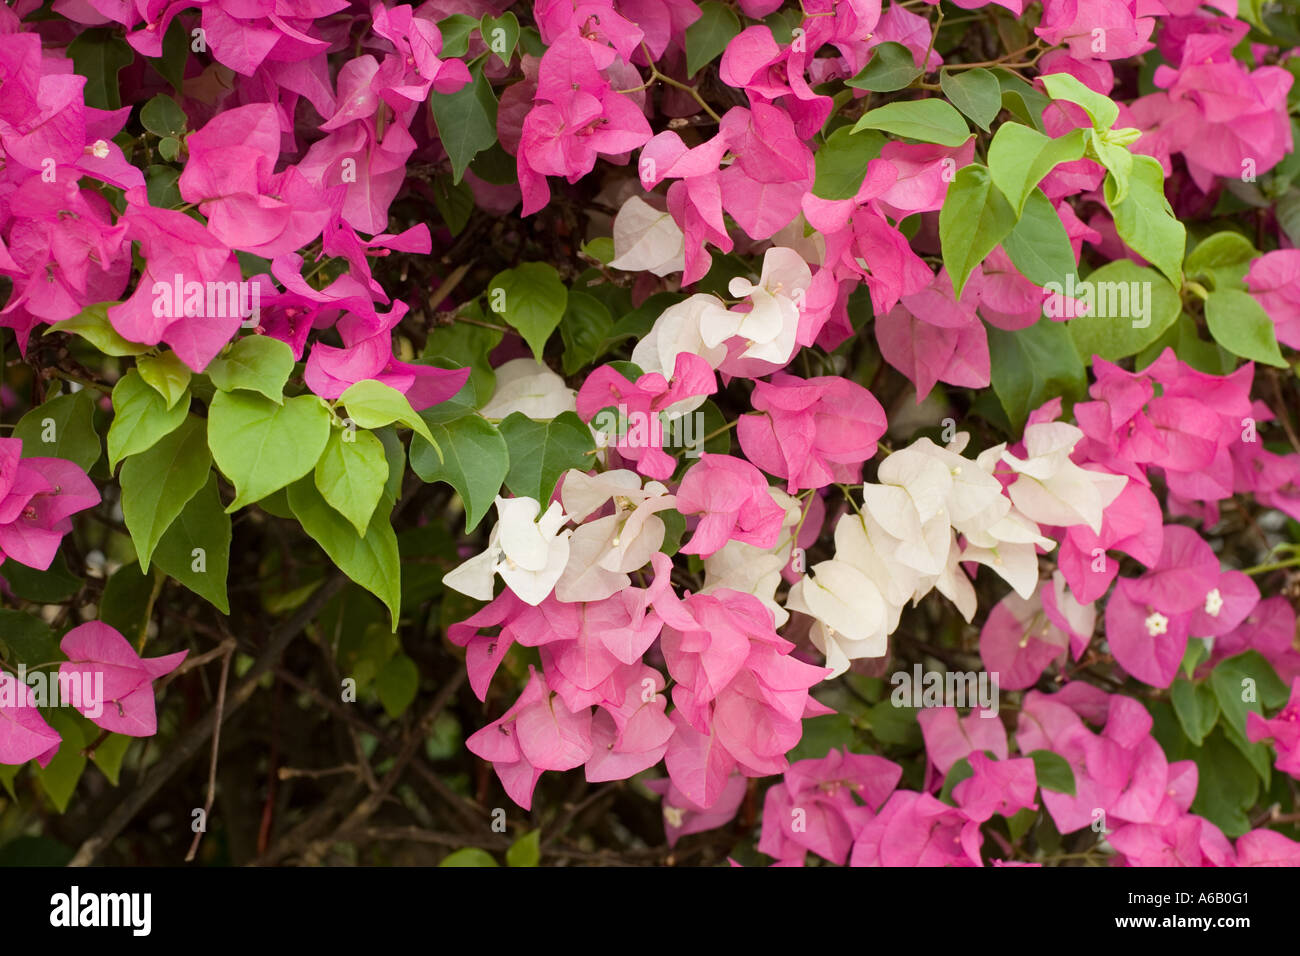 Purple and white flowers of the south american woody shrub stock purple and white flowers of the south american woody shrub bougainvillaea now a common garden plant in kenya dhlflorist Choice Image